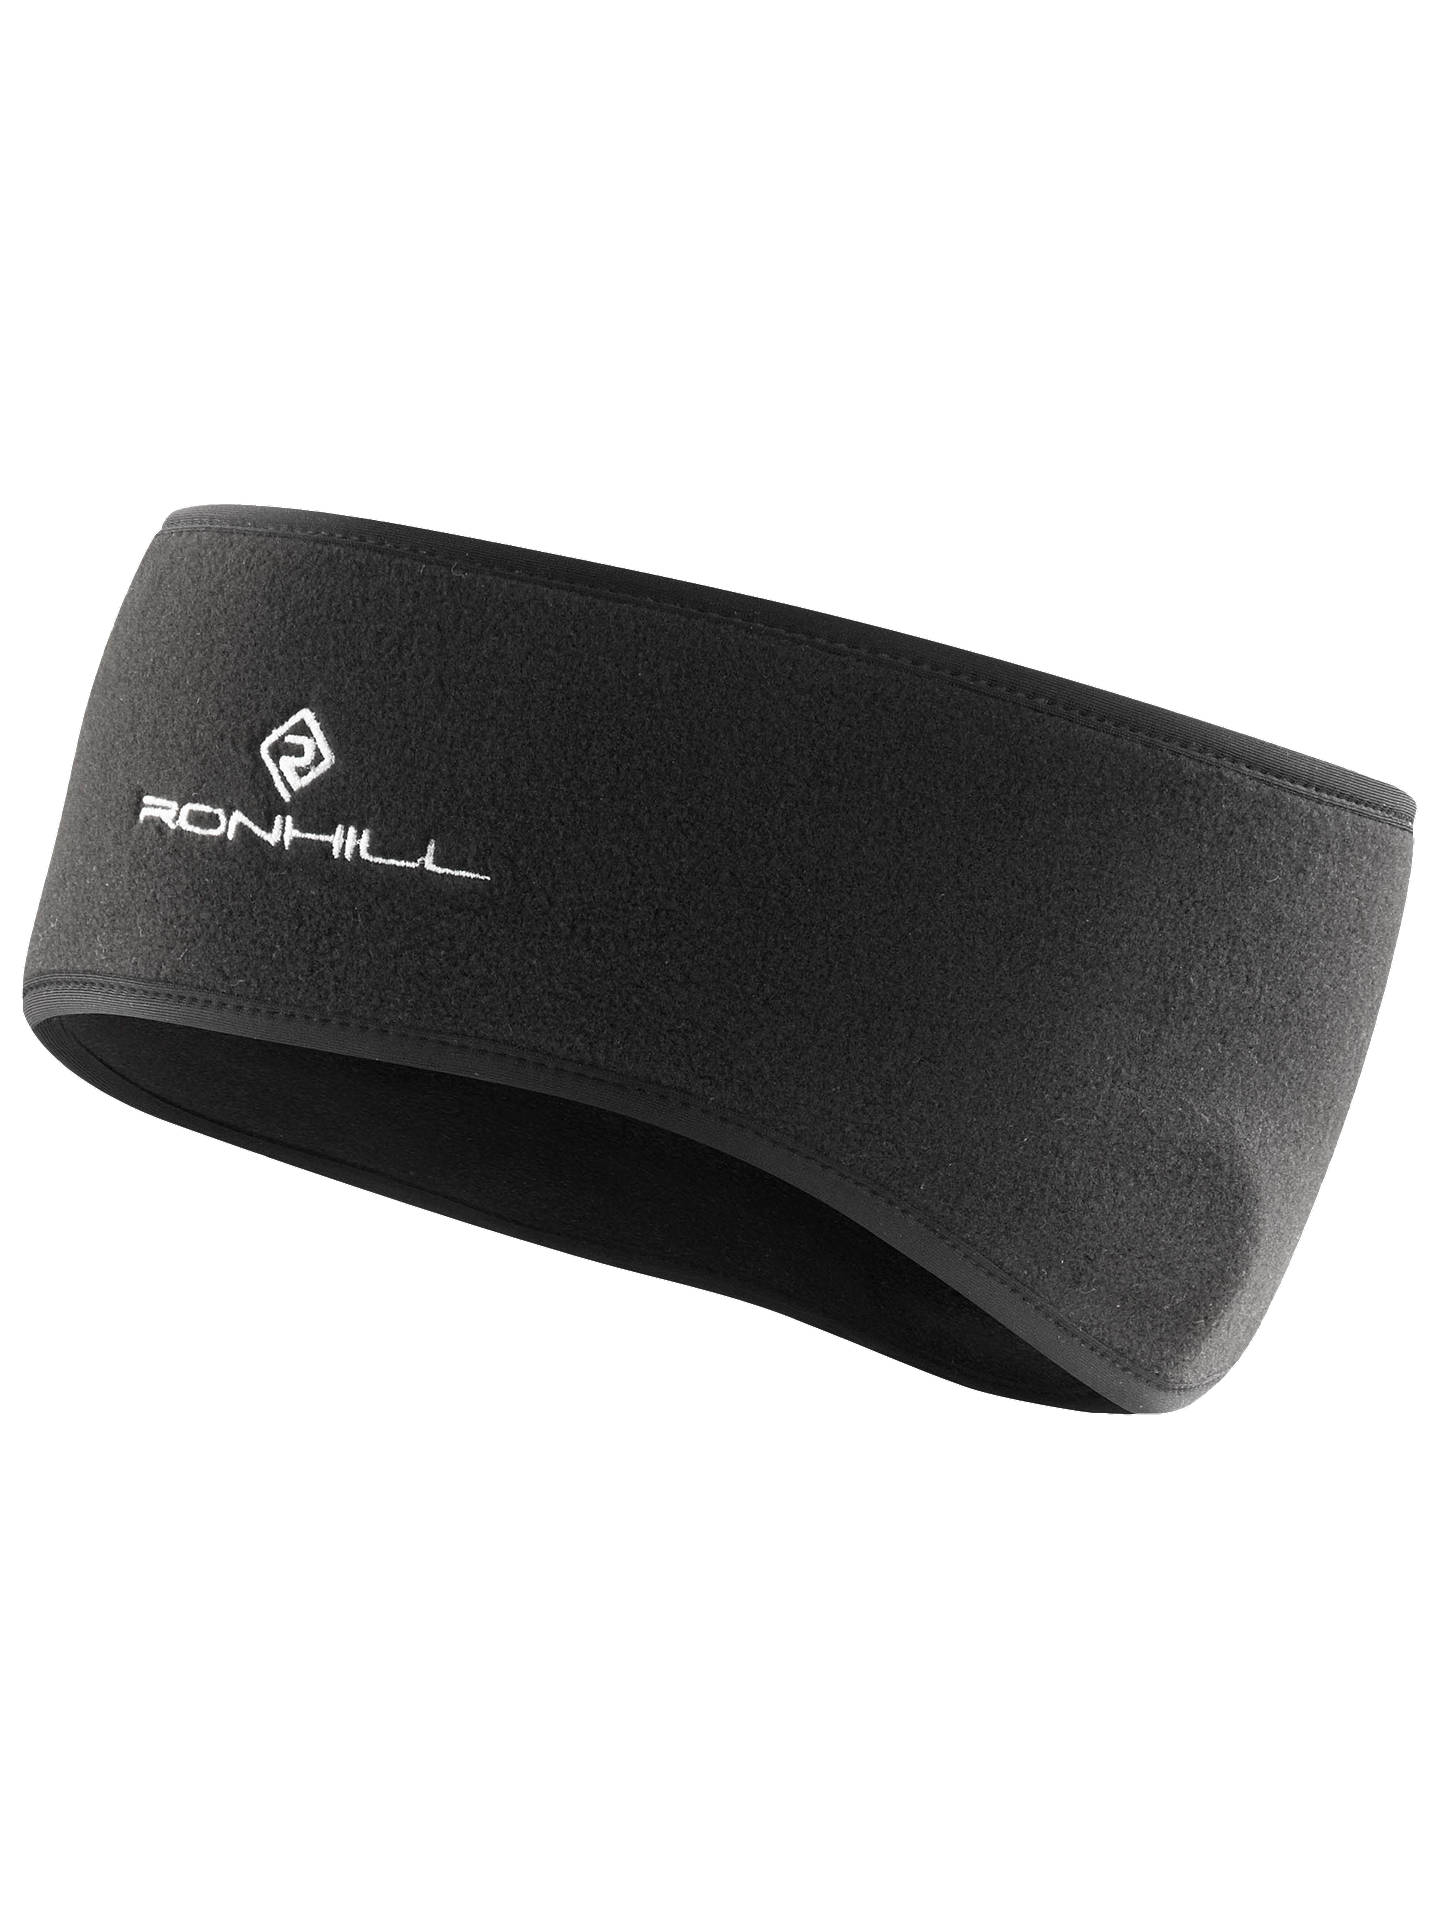 BuyRonhill Run Headband, Black, M/L Online at johnlewis.com